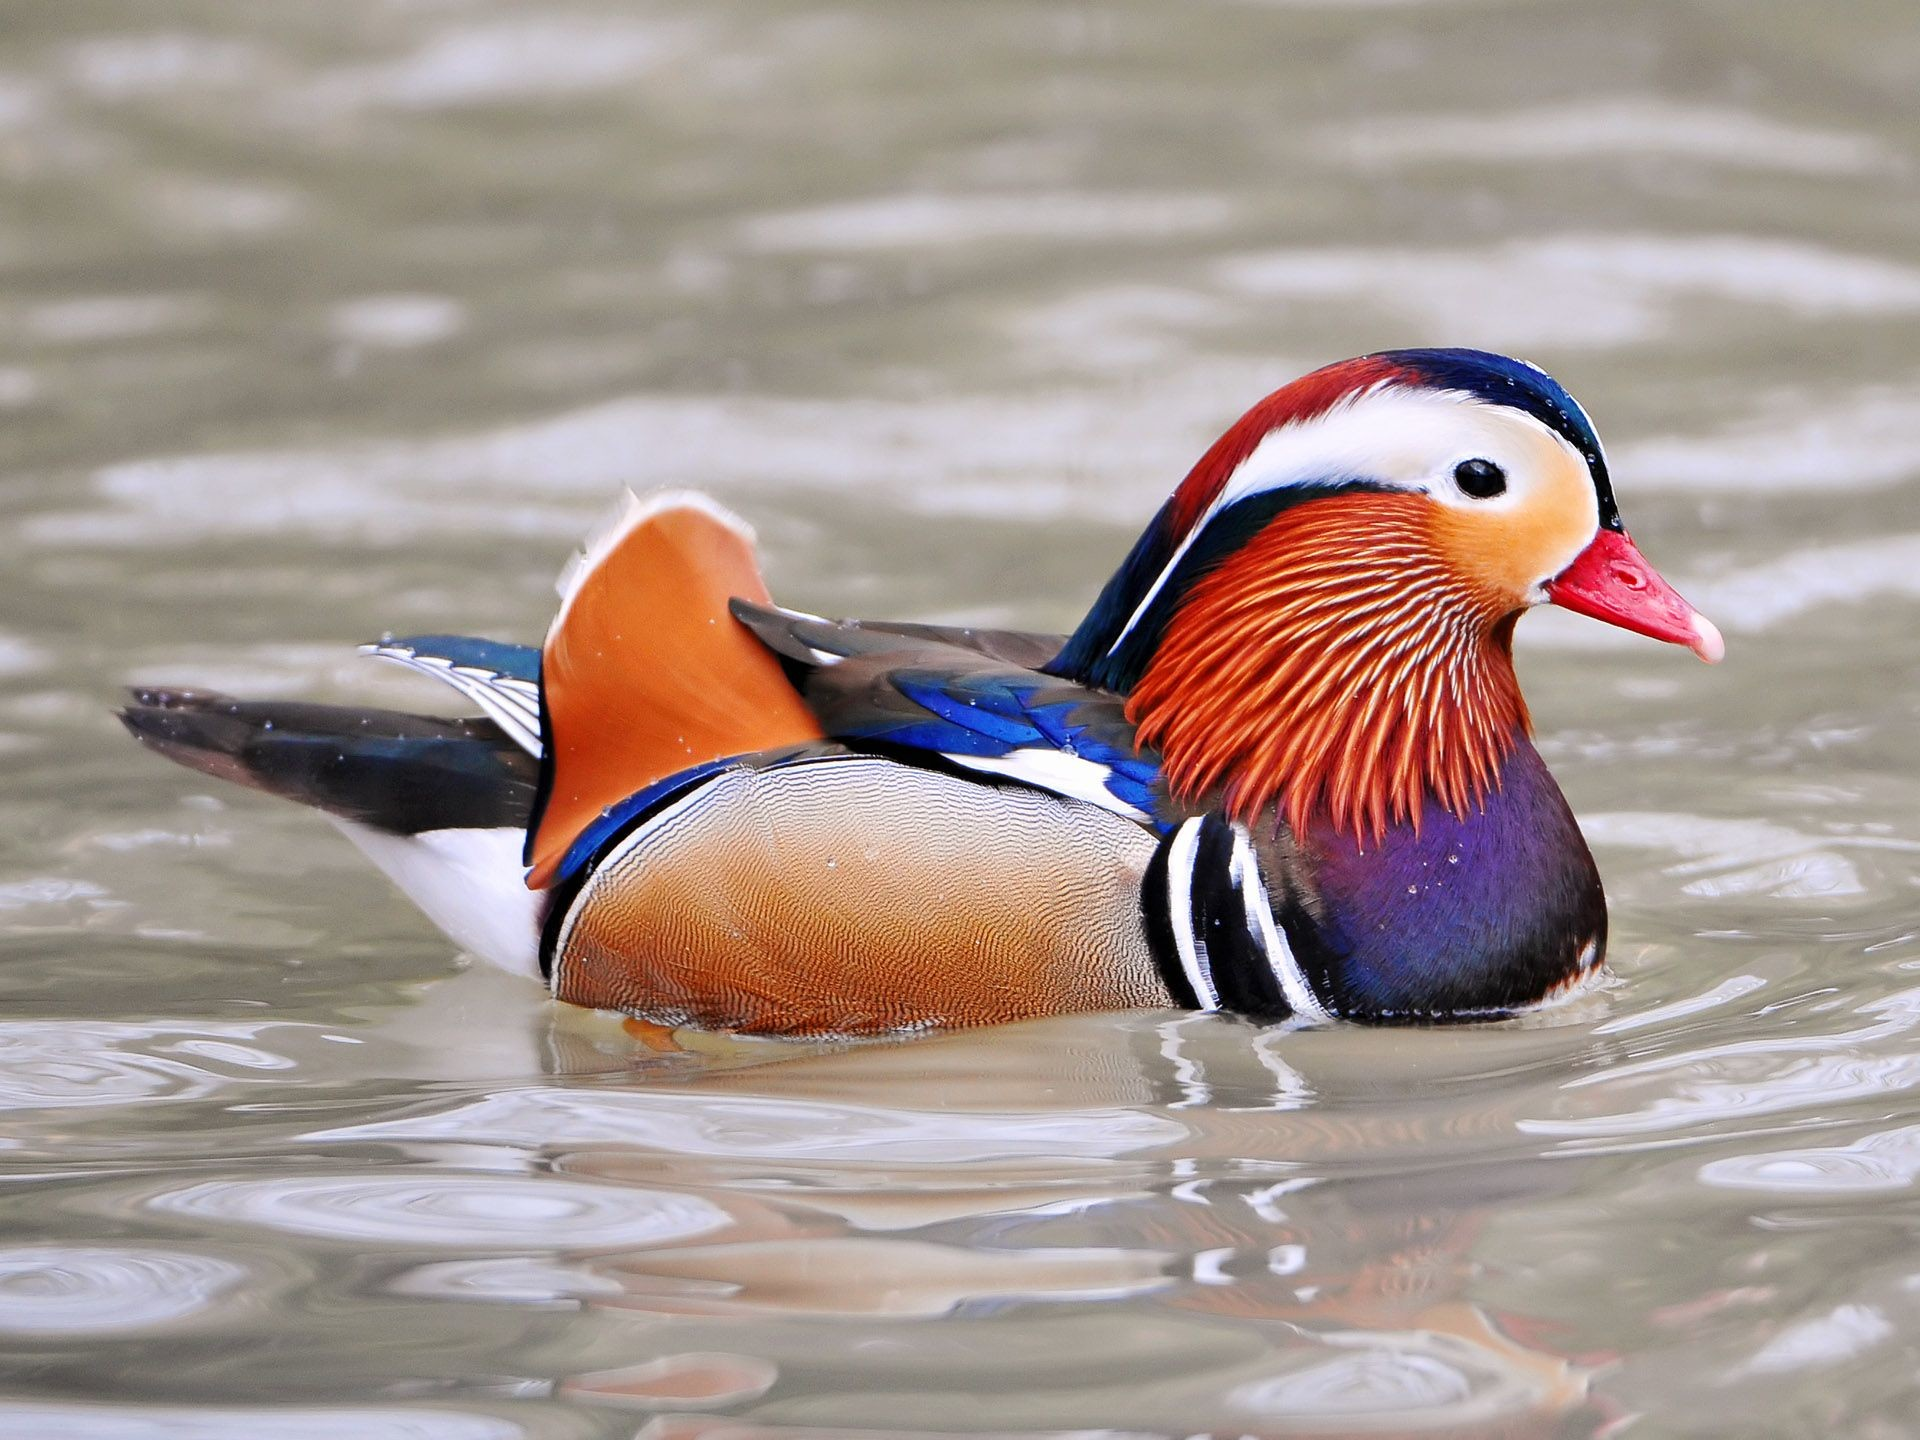 Res: 1920x1440, Duck Wallpapers 45 2016 Wallpaper S Archive Fantastic Pictures